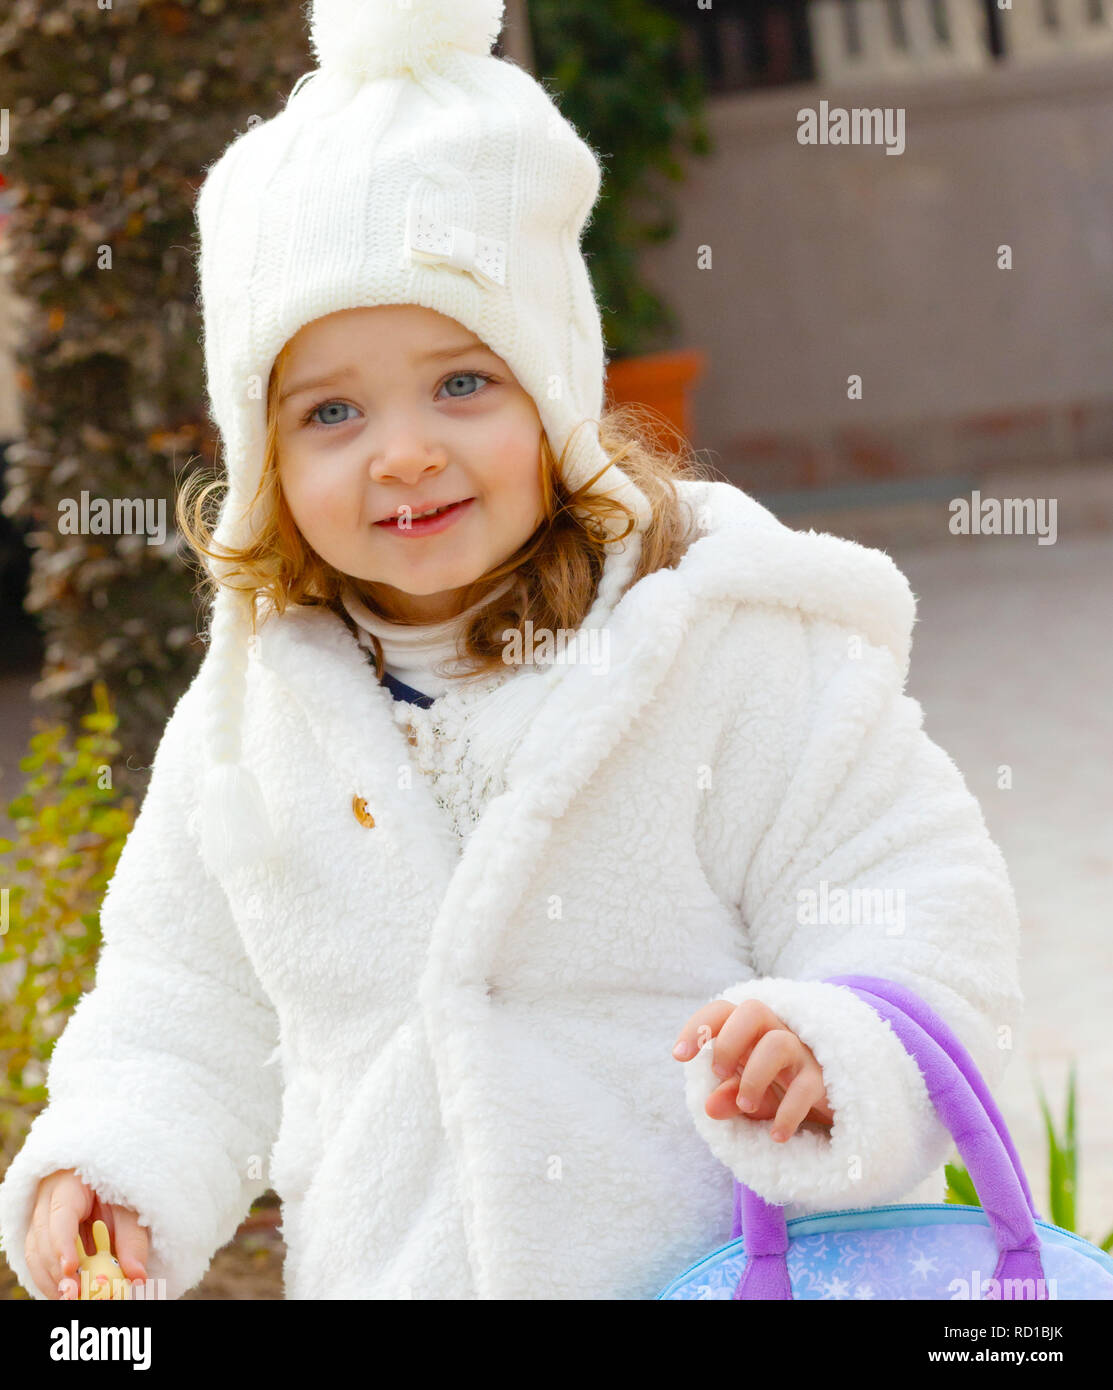 Pretty girl with wool hat and and white coat in a garden at winter. - df3b7befa684